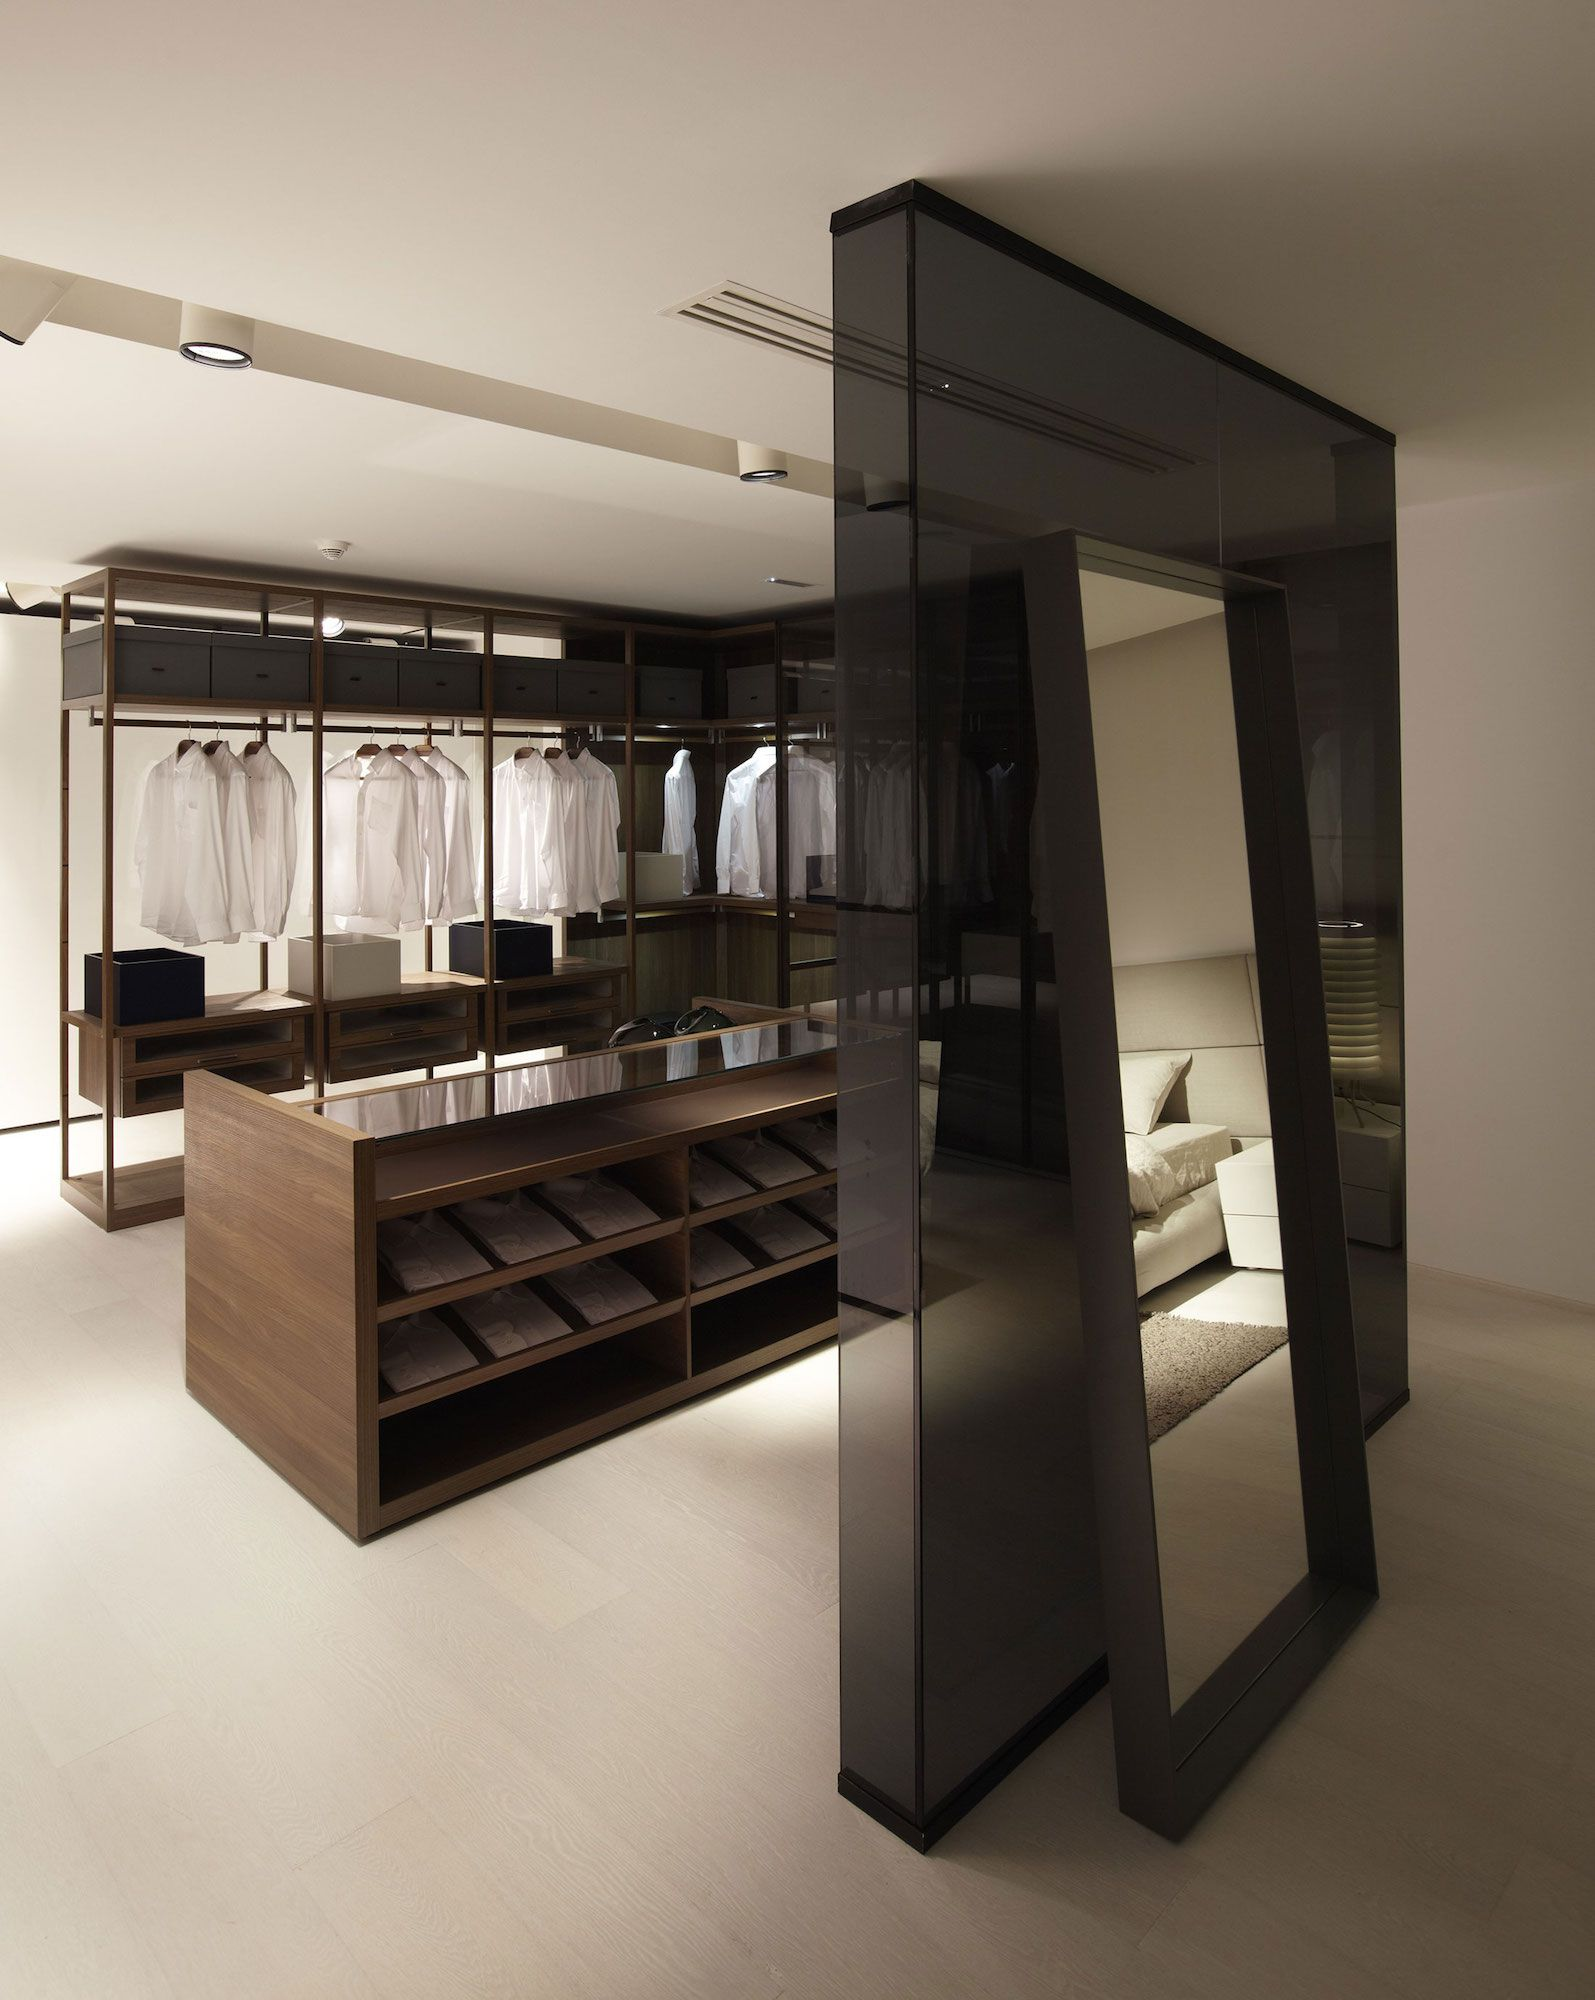 Bestetti Associati Studio wardrobe design